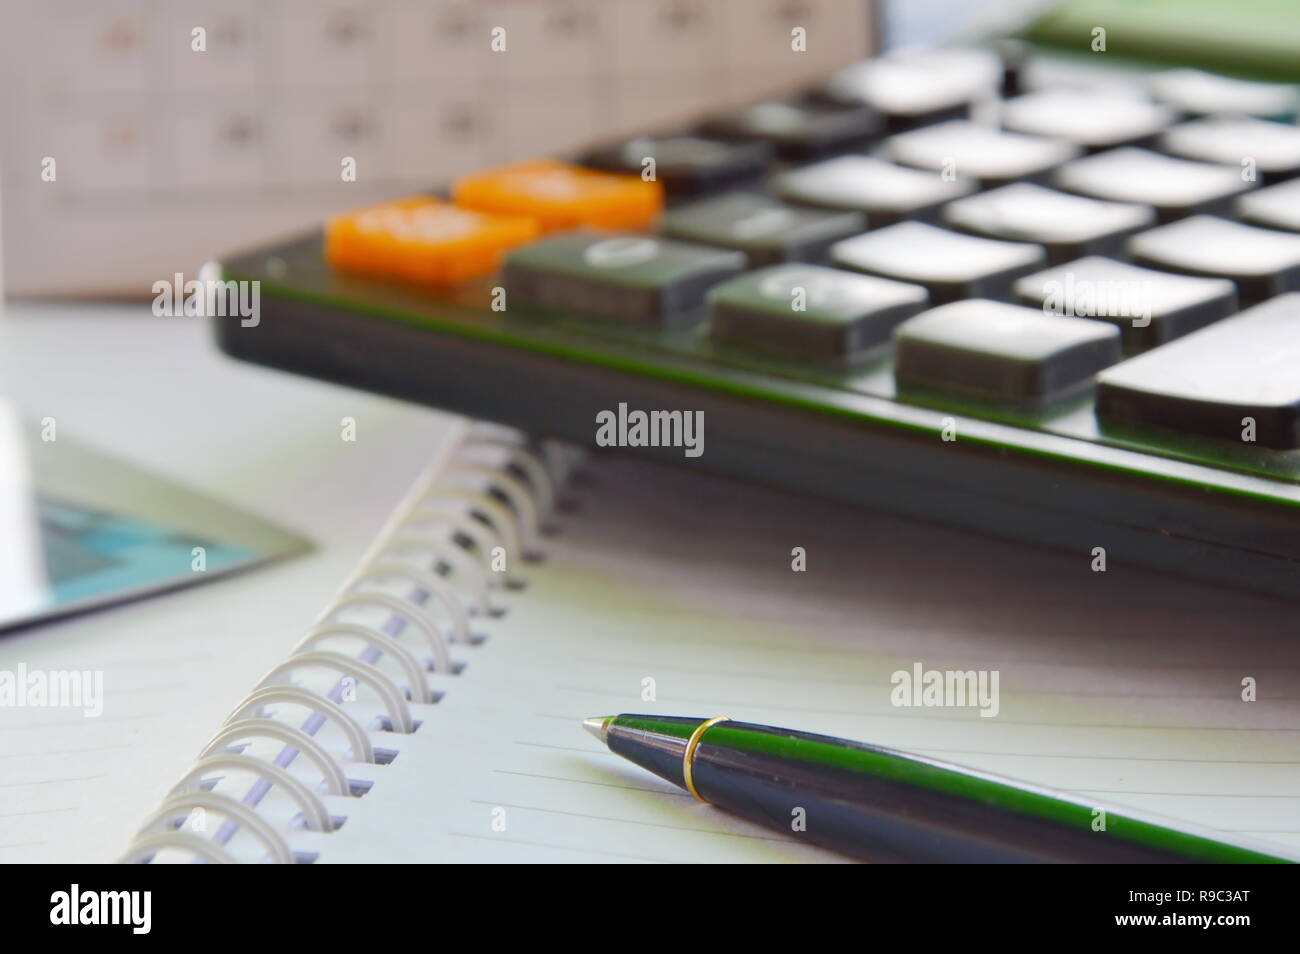 pen and calculator on the book - Stock Image